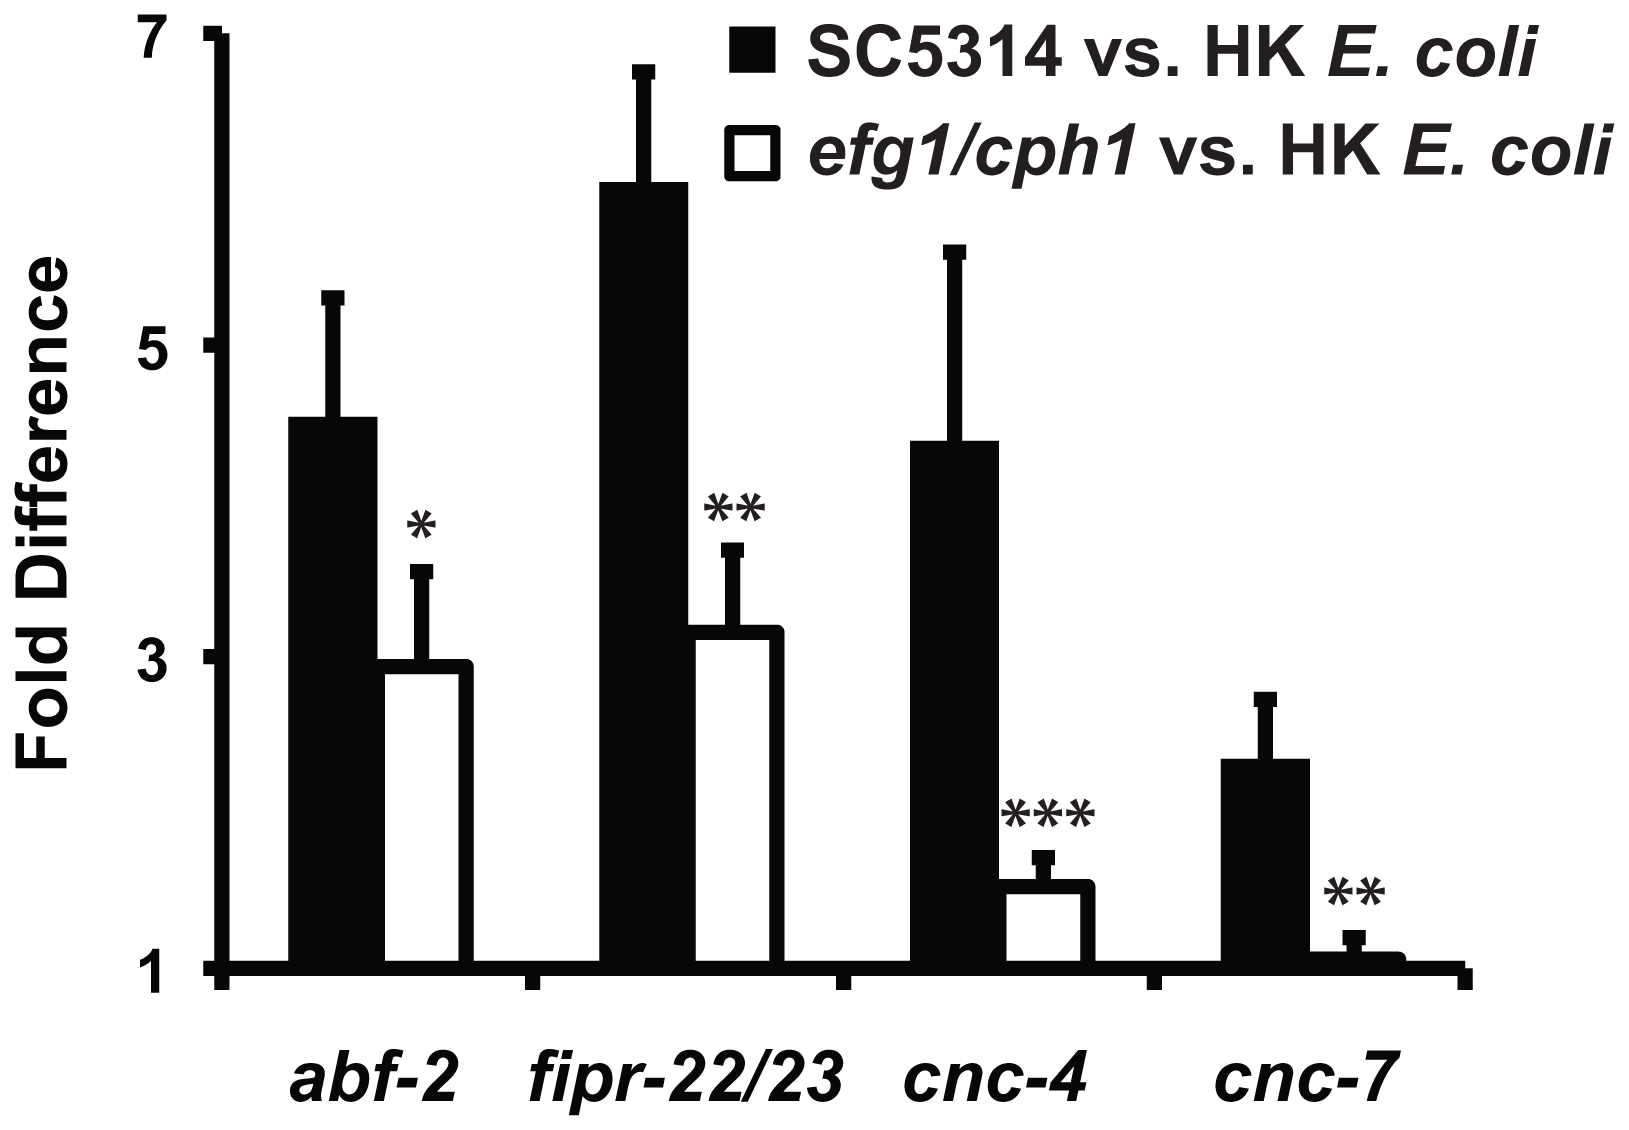 The virulence of the infecting <i>C. albicans</i> strain affects the induction of putative antifungal immune effectors.